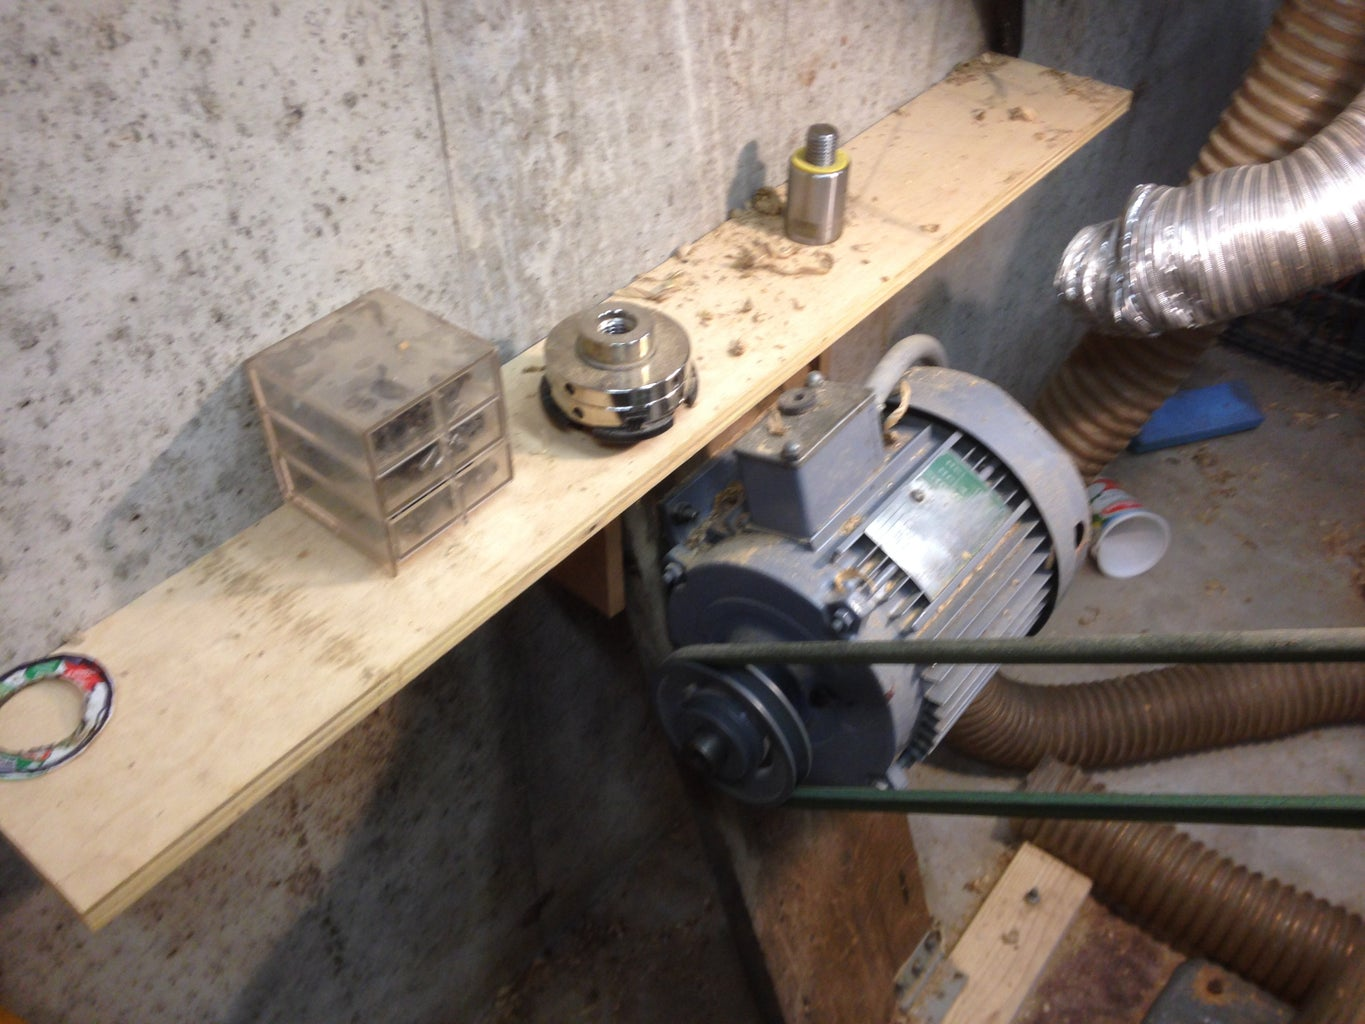 VFD Accessories to Make the Lathe Safer and More Efficient